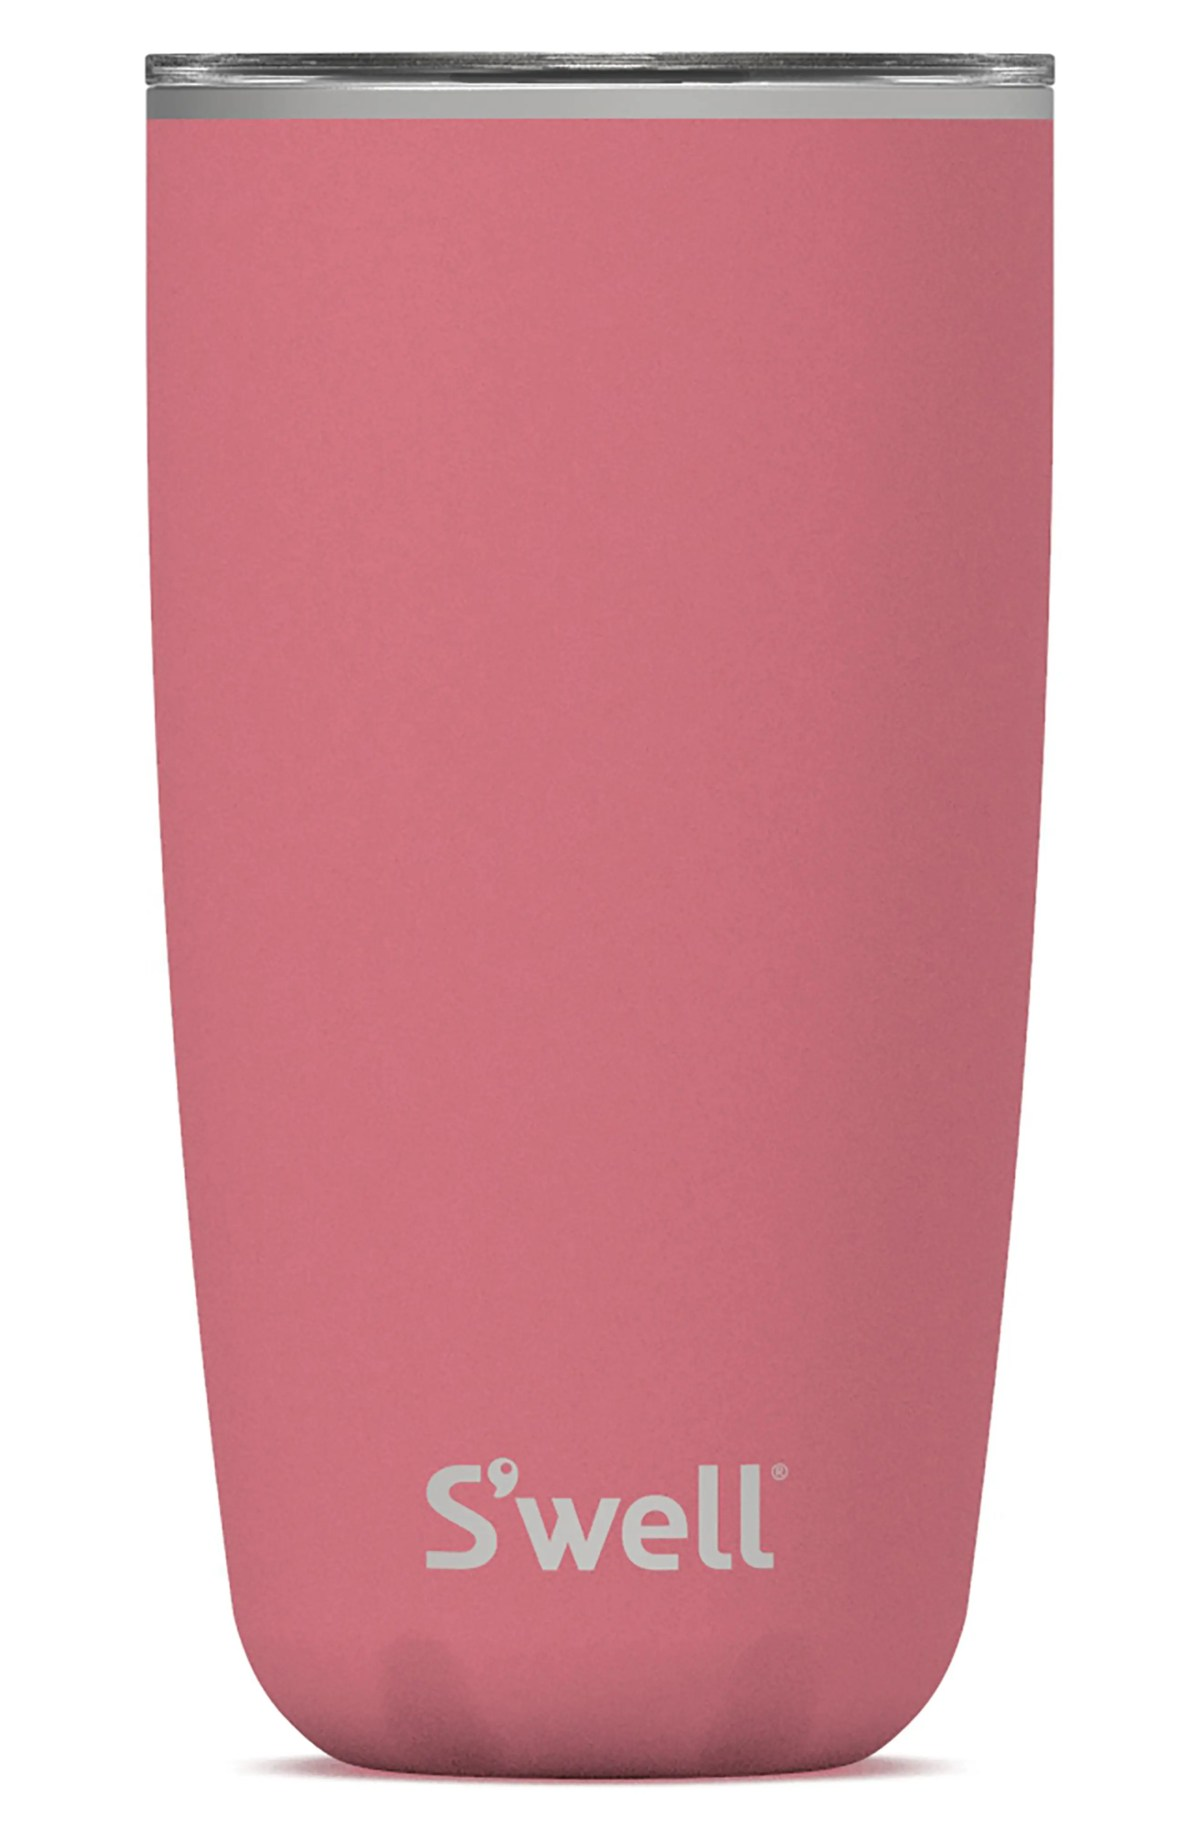 S'WELL 18-Ounce Insulated Stainless Steel Tumbler, Main, color, PINK